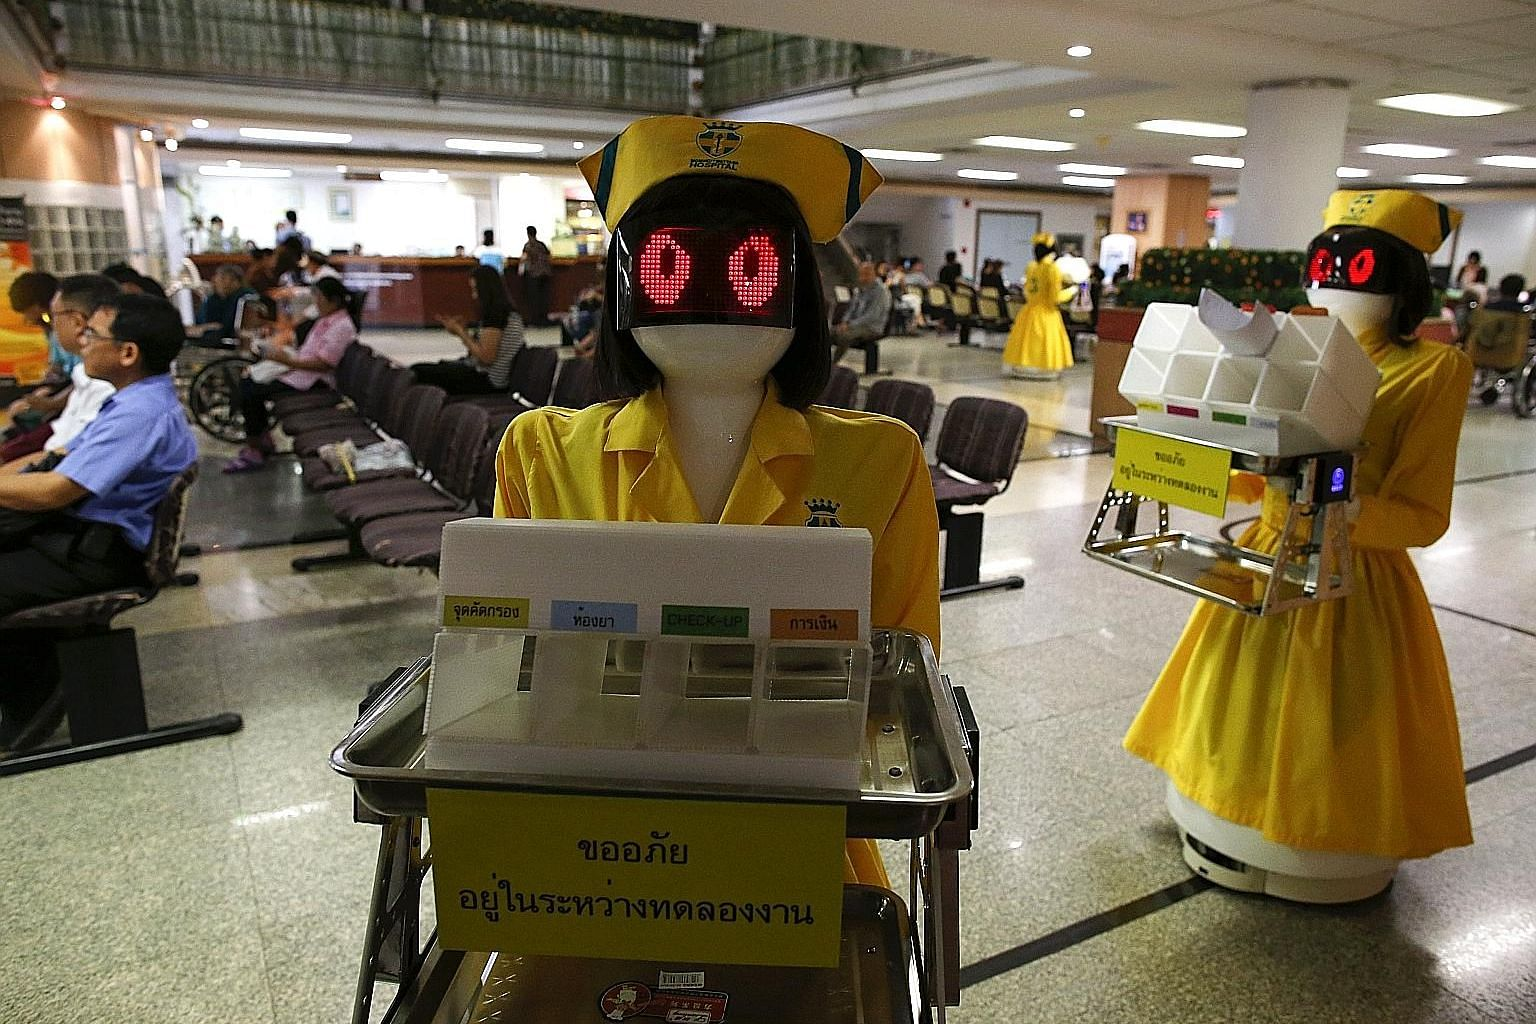 Automated Guided Vehicles, dressed in nurse costumes, at Mongkutwattana General Hospital in Bangkok. The Thai hospital uses three such robots as document couriers to save hiring costs and tackle a shortage of staff. MAS noted that digital transformat